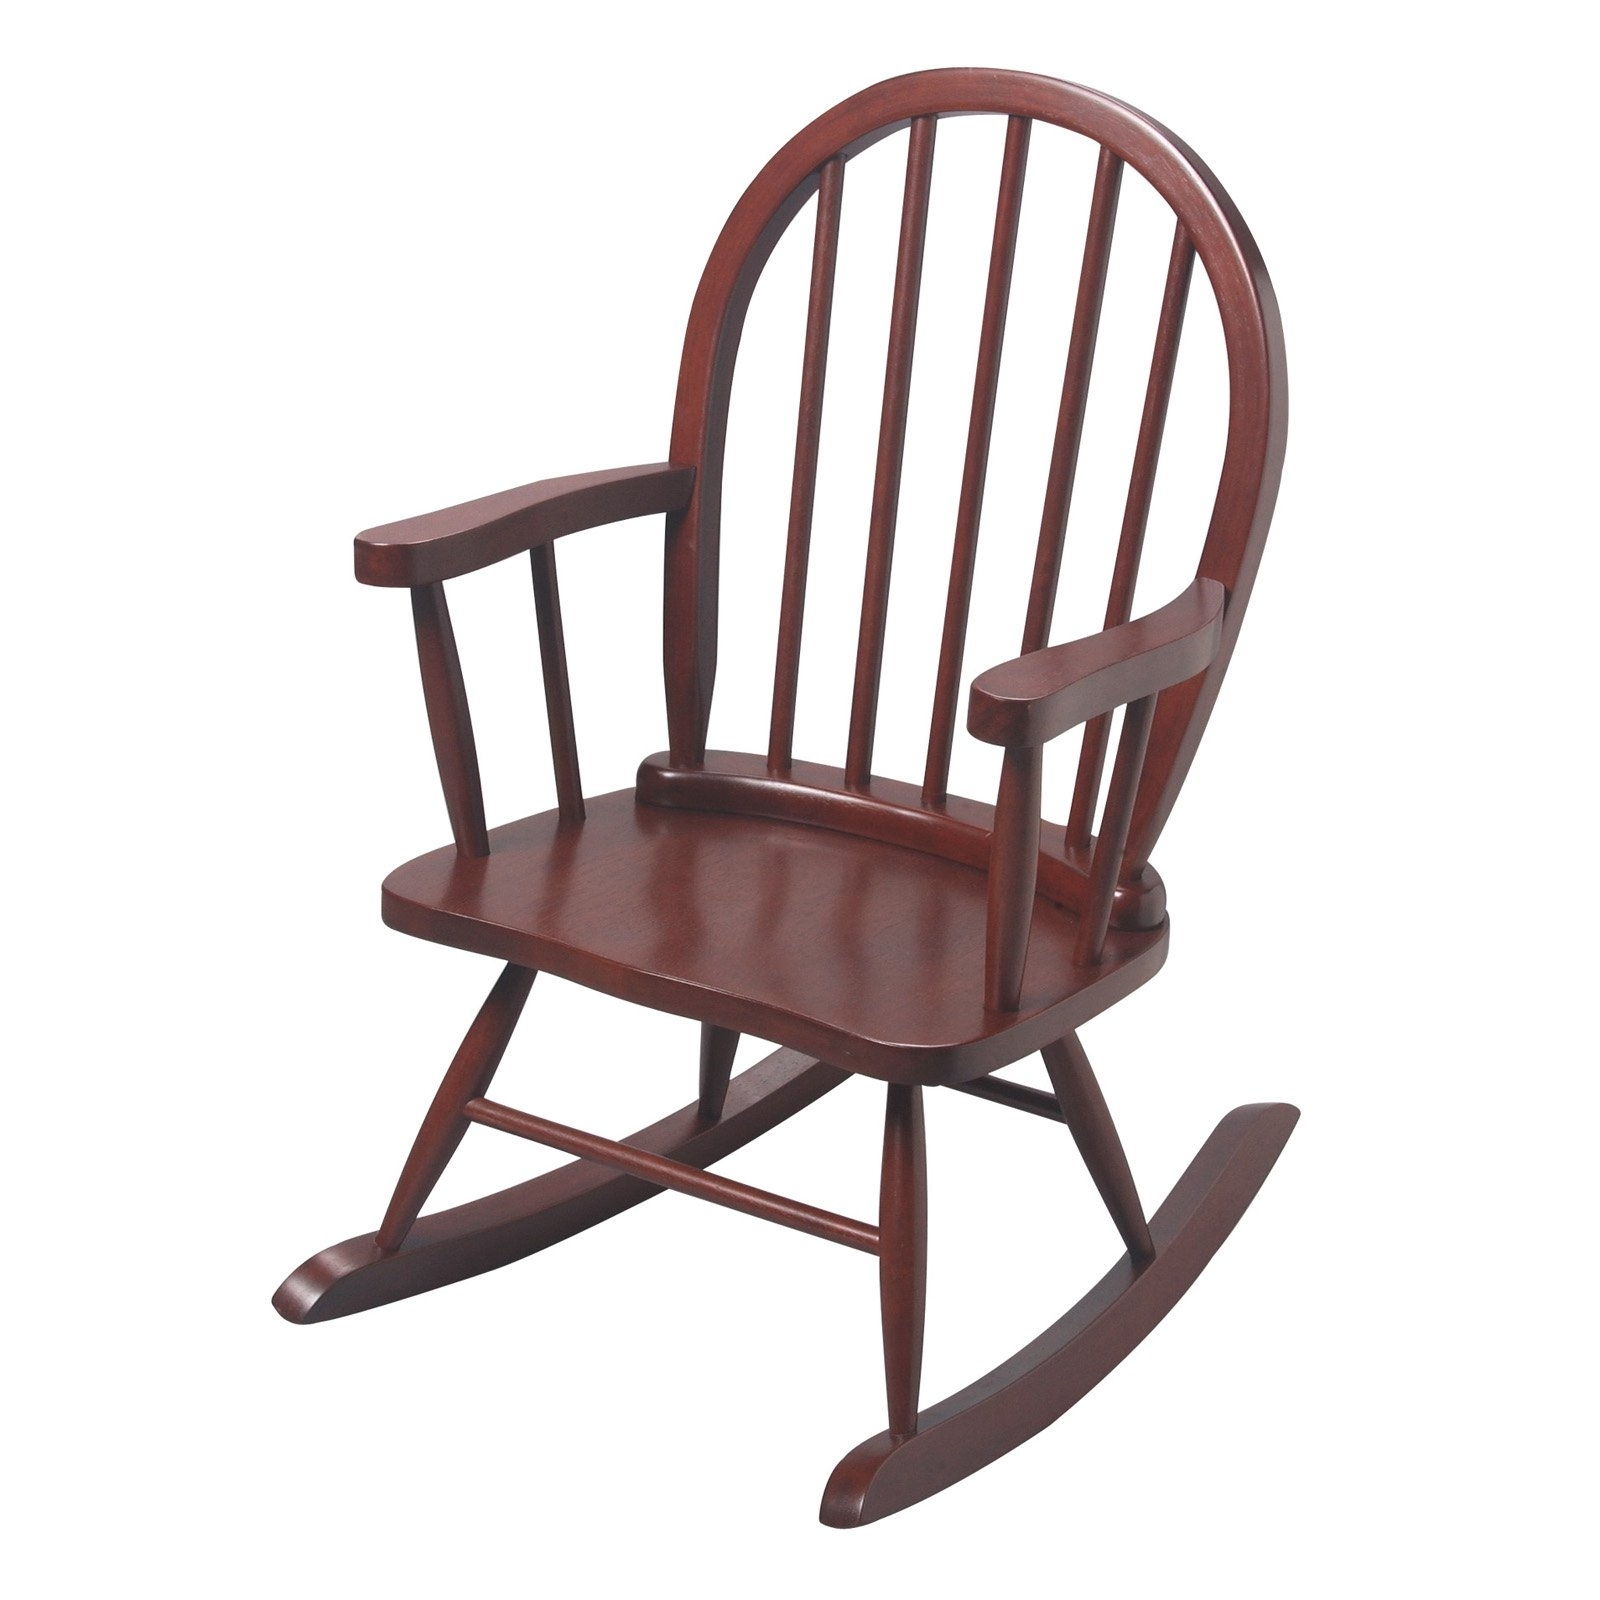 Well Known Rocking Chairs For Toddlers Inside Gift Mark Windsor Childrens 3600 Rocking Chair – Cherry – Walmart (View 2 of 20)